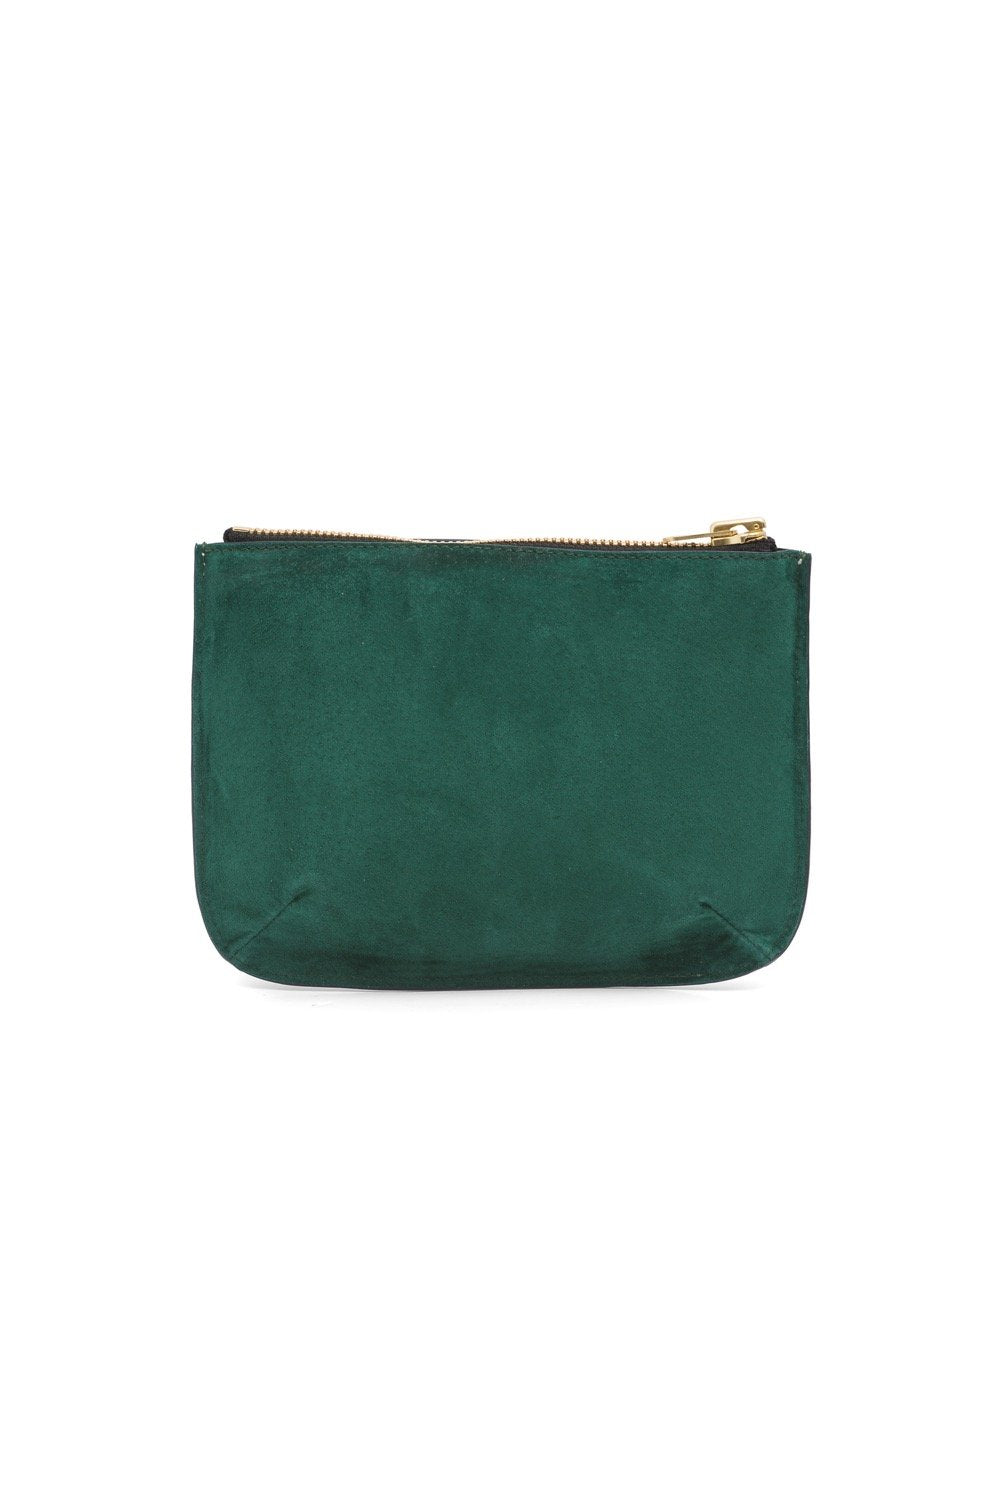 Pouch in green suede & blue leather